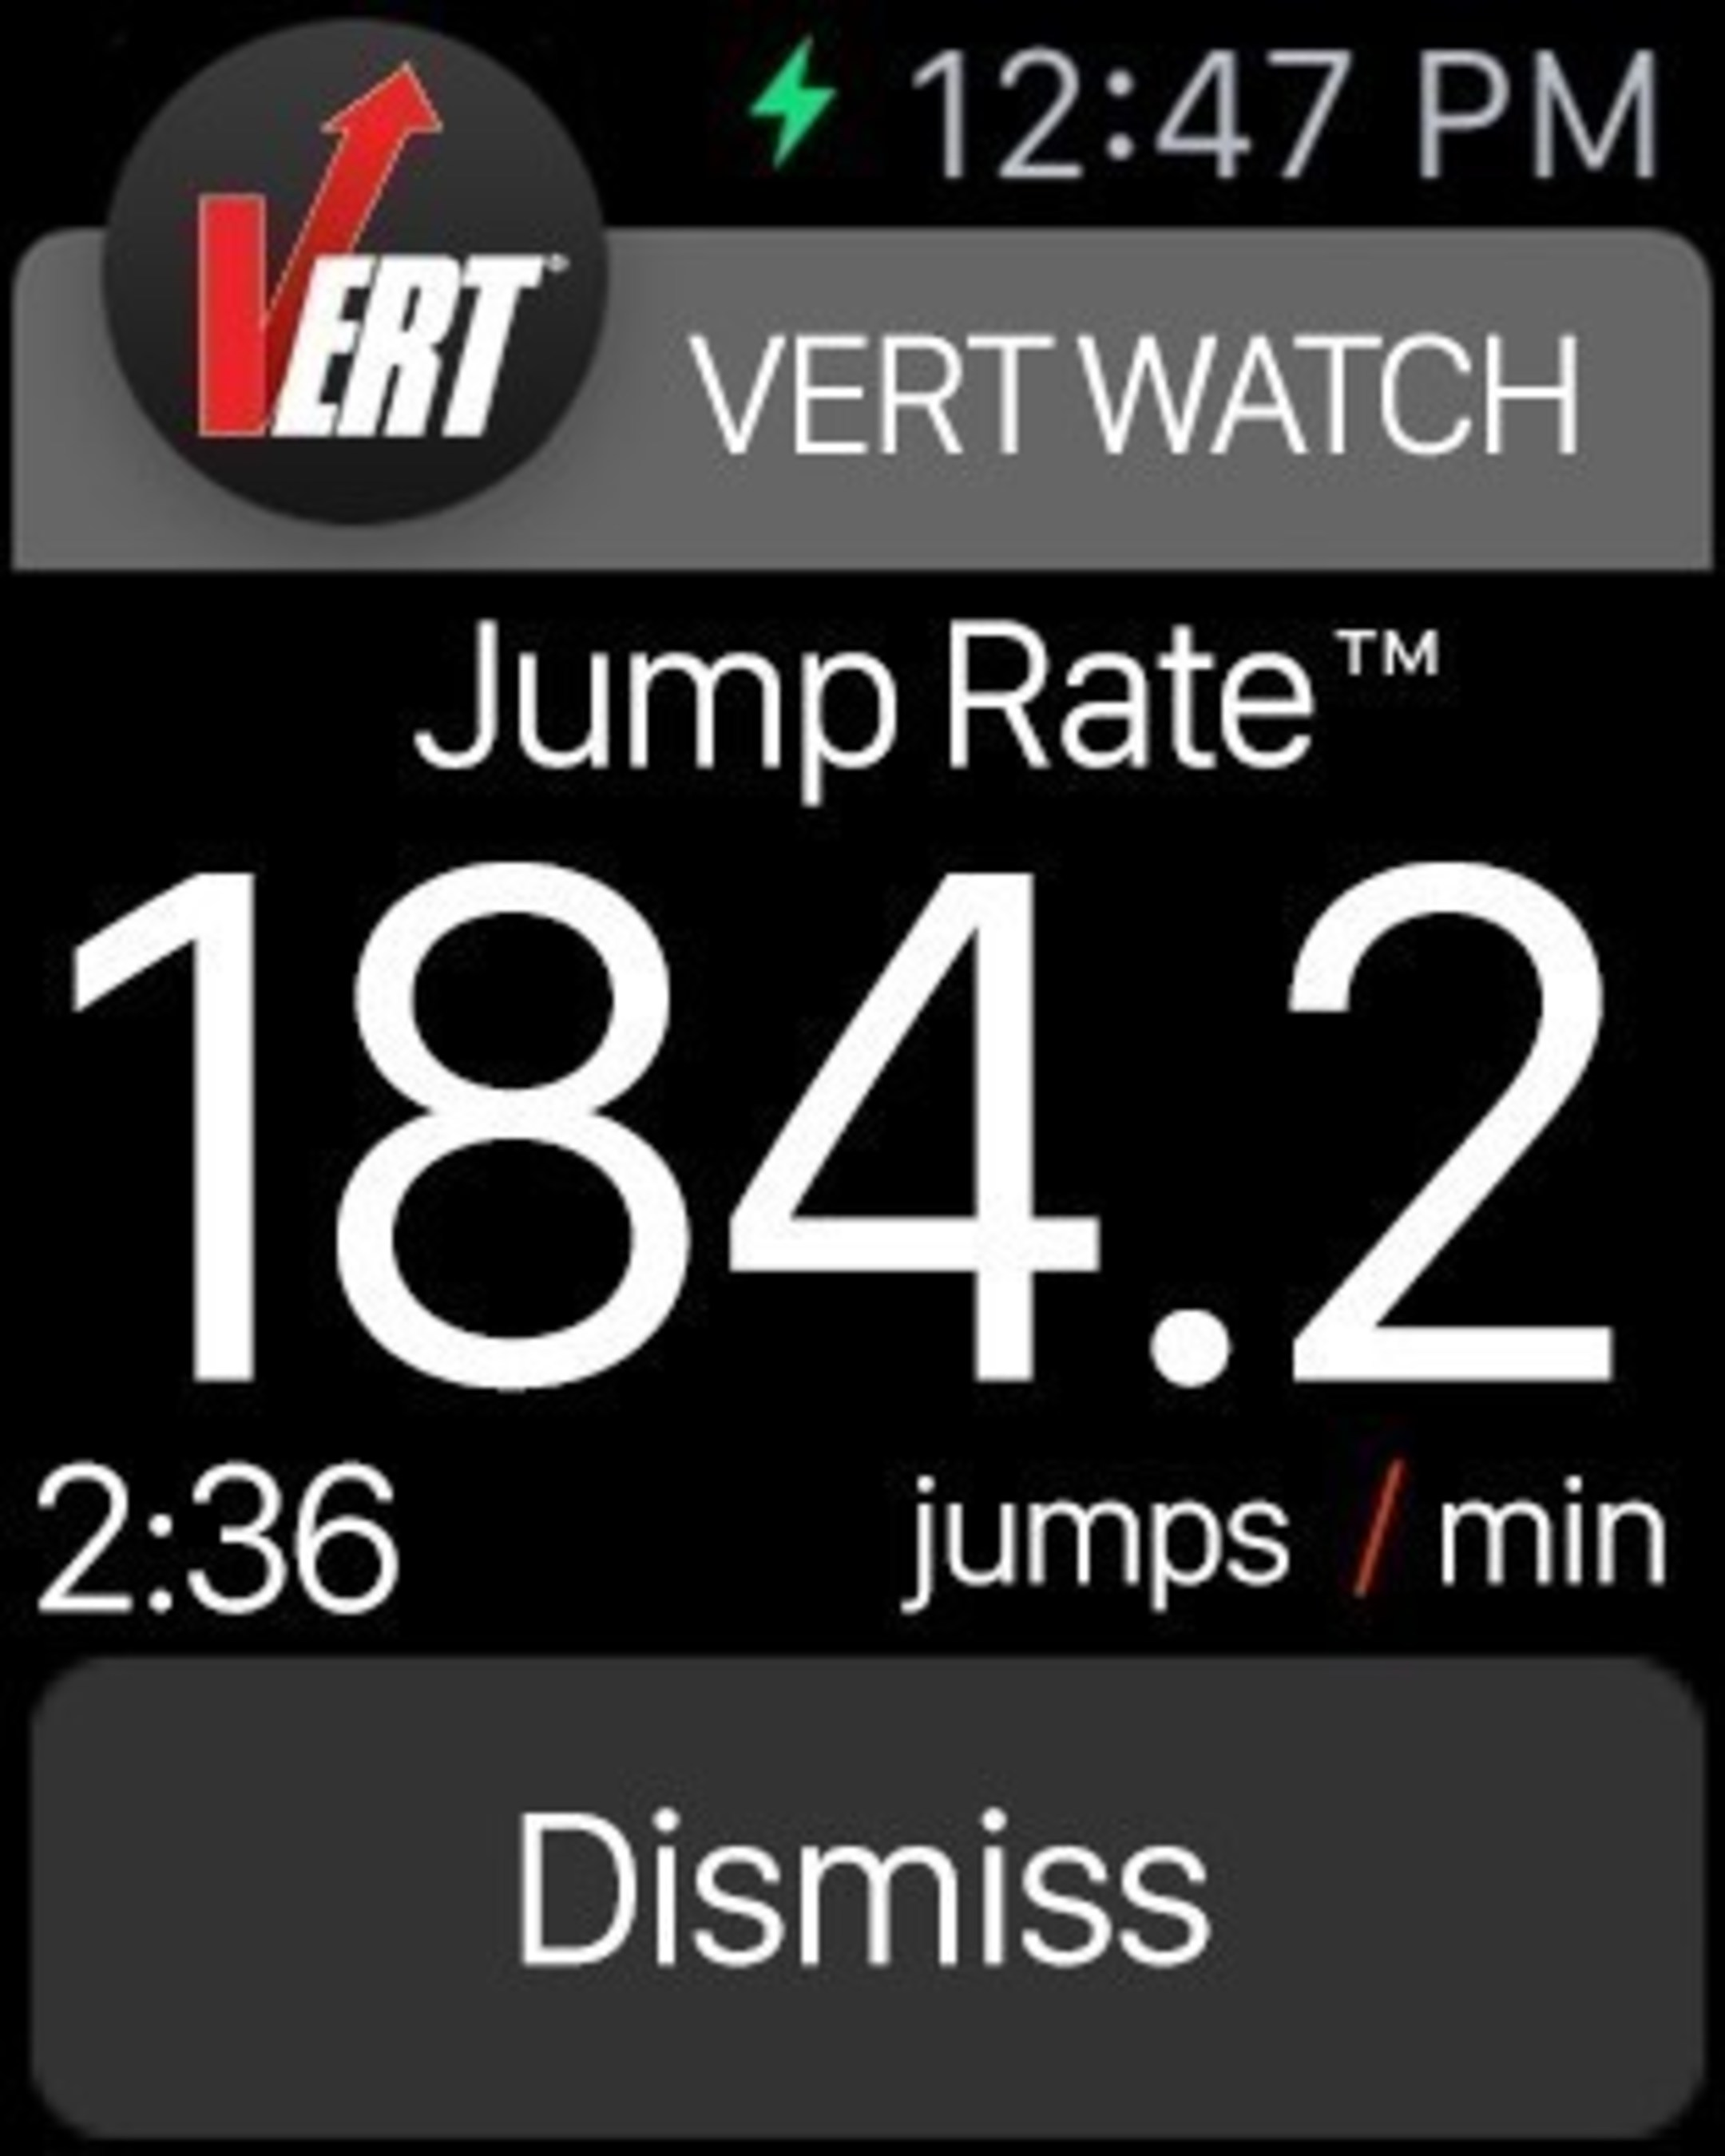 VERT Launches Jump Data App on Eve of Apple Watch Sales